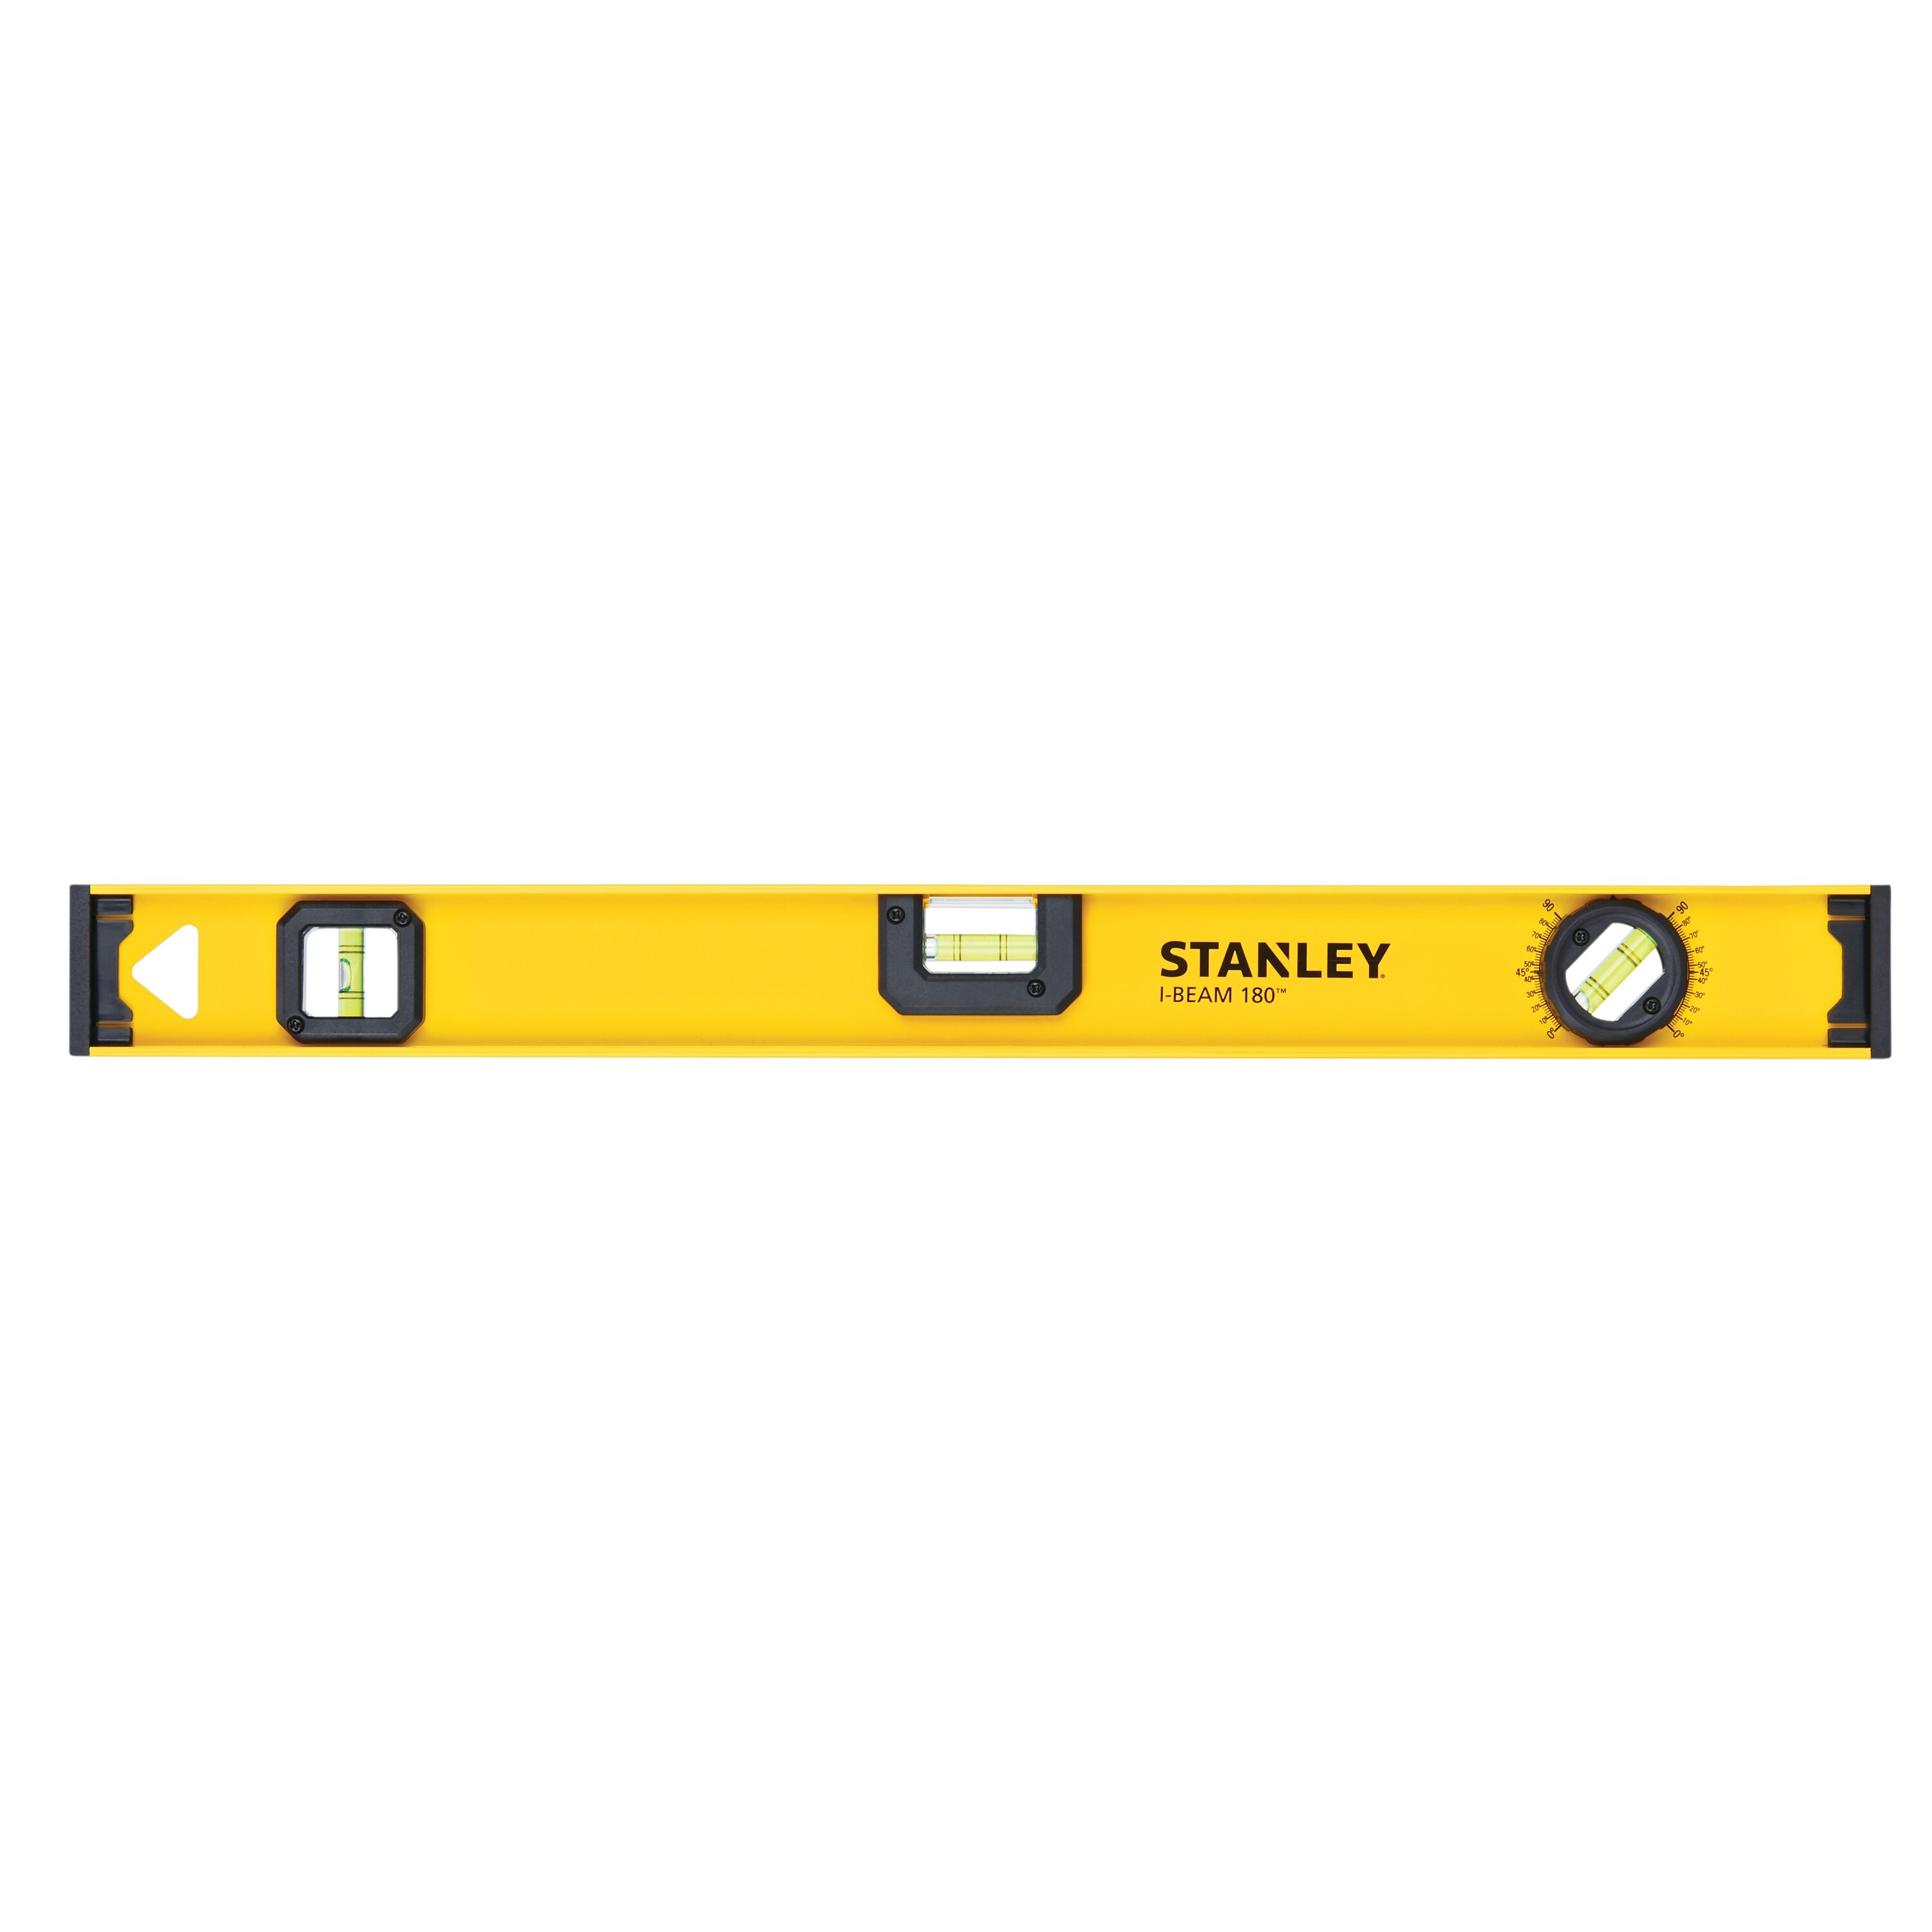 Stanley Tools - 24 in IBeam 180 Level - 42-324